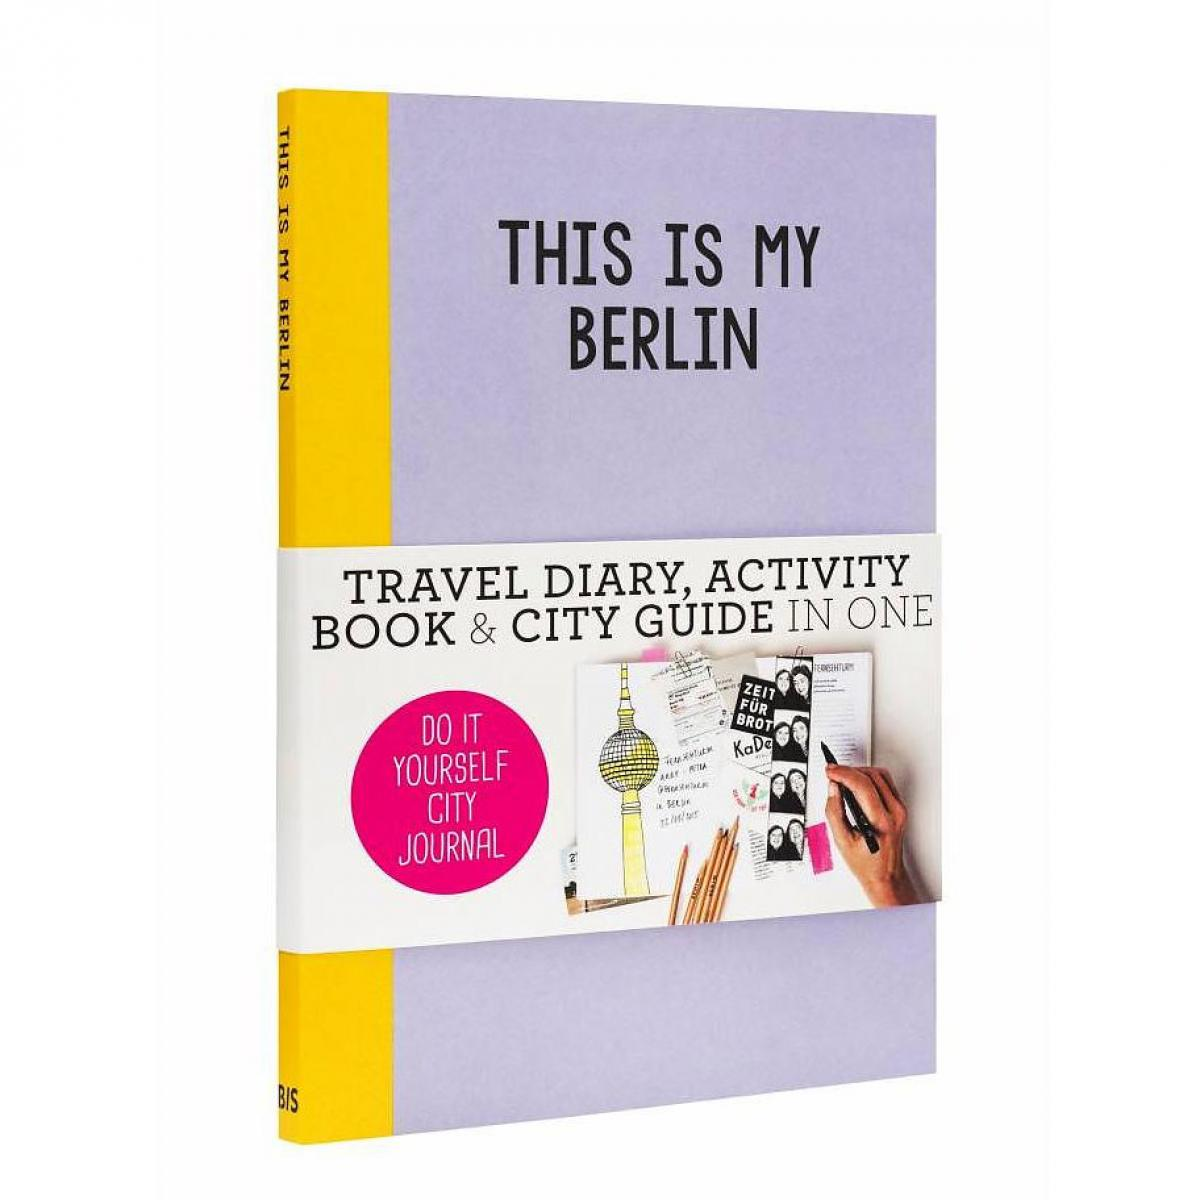 This is my Berlin, Petra de Hamer: Do-It-Yourself City Journal